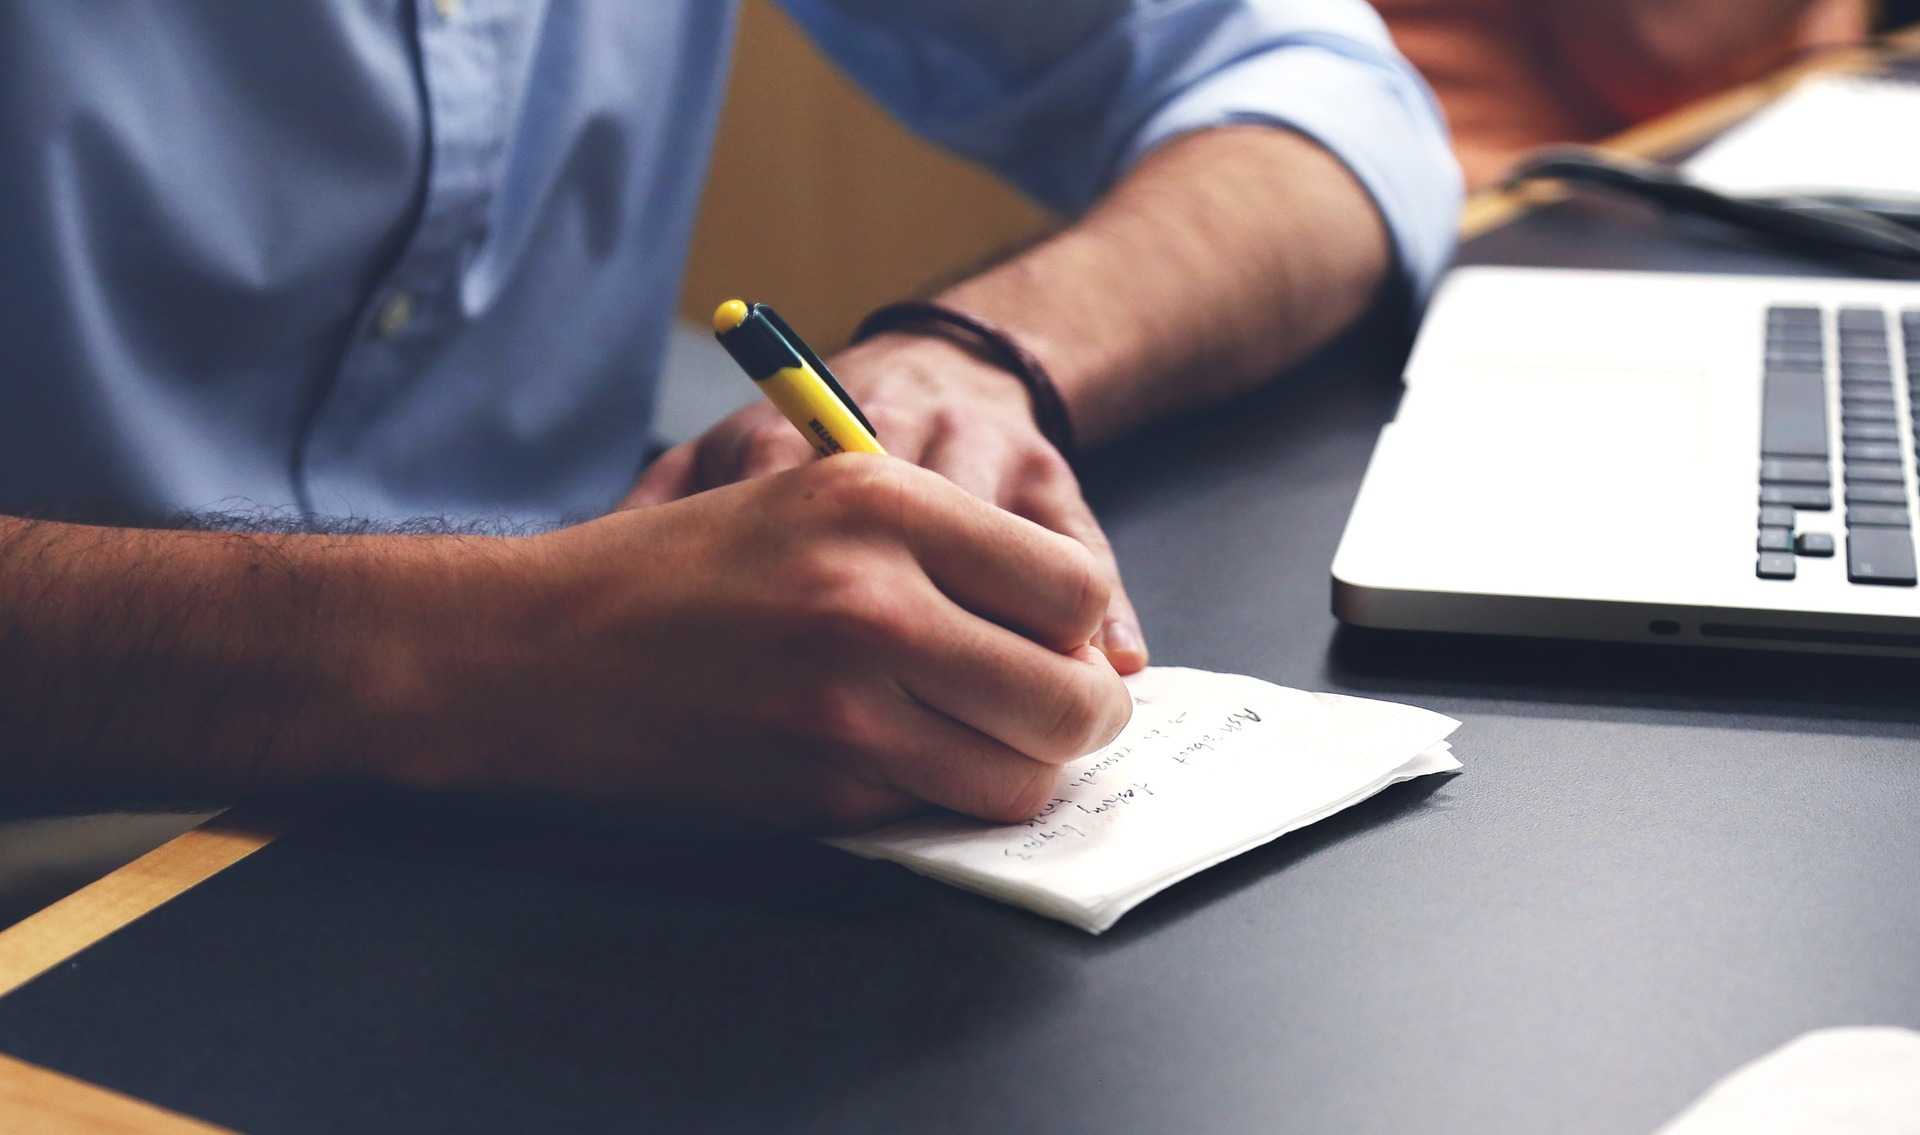 Factors To Consider When Choosing An Essay Writing Service